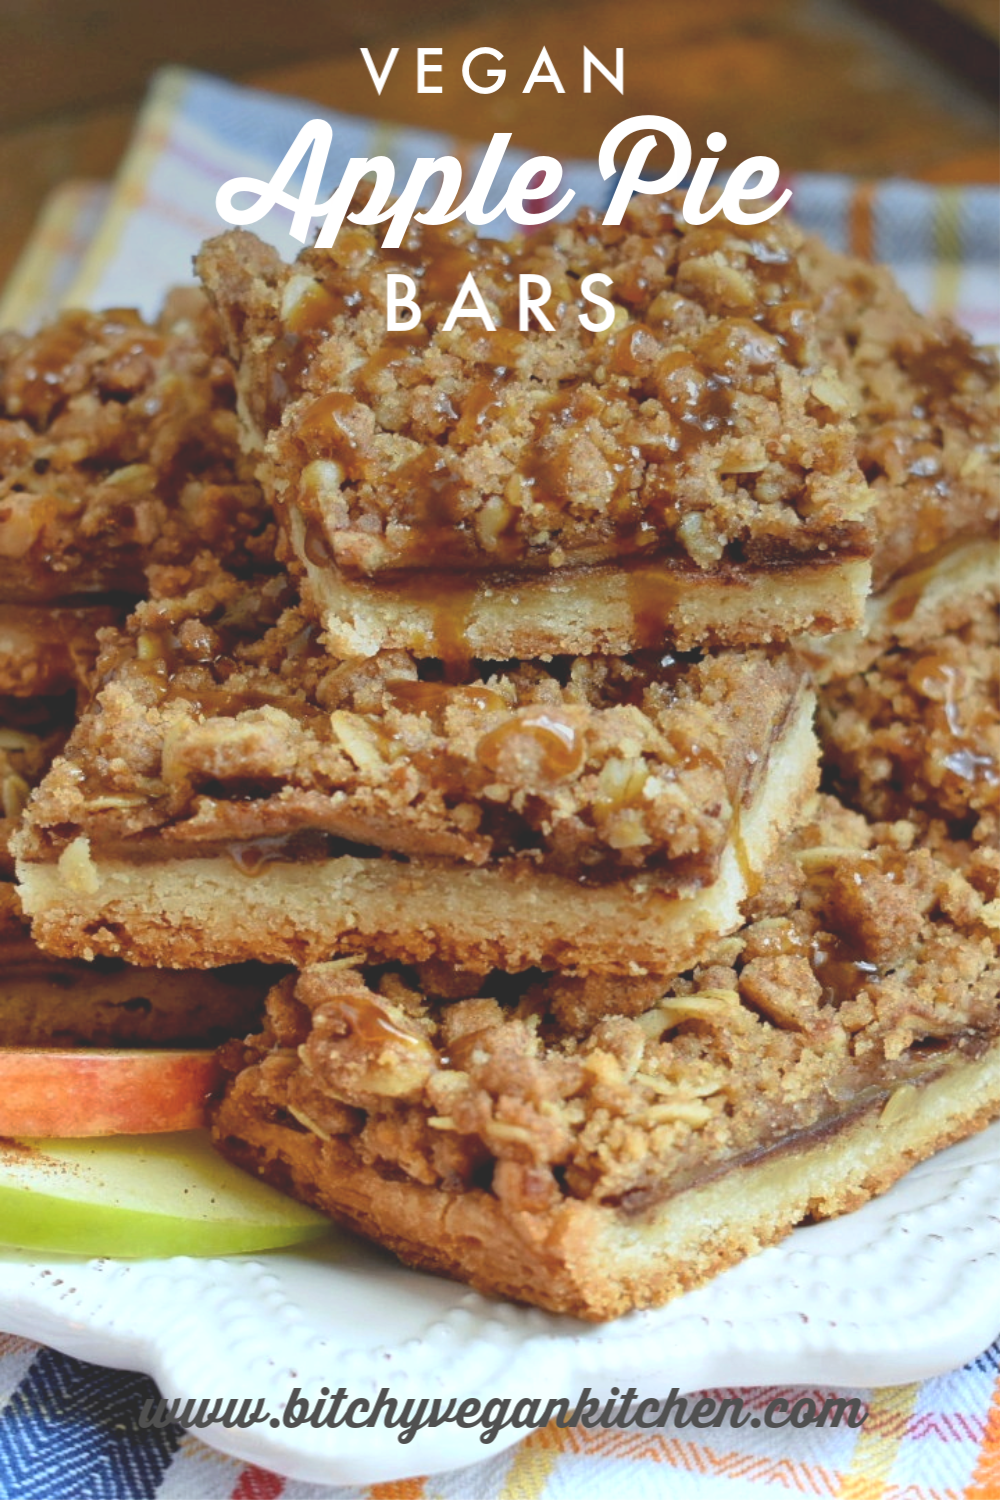 Vegan Apple Pie Crumble Bars - The Bitchy Baker